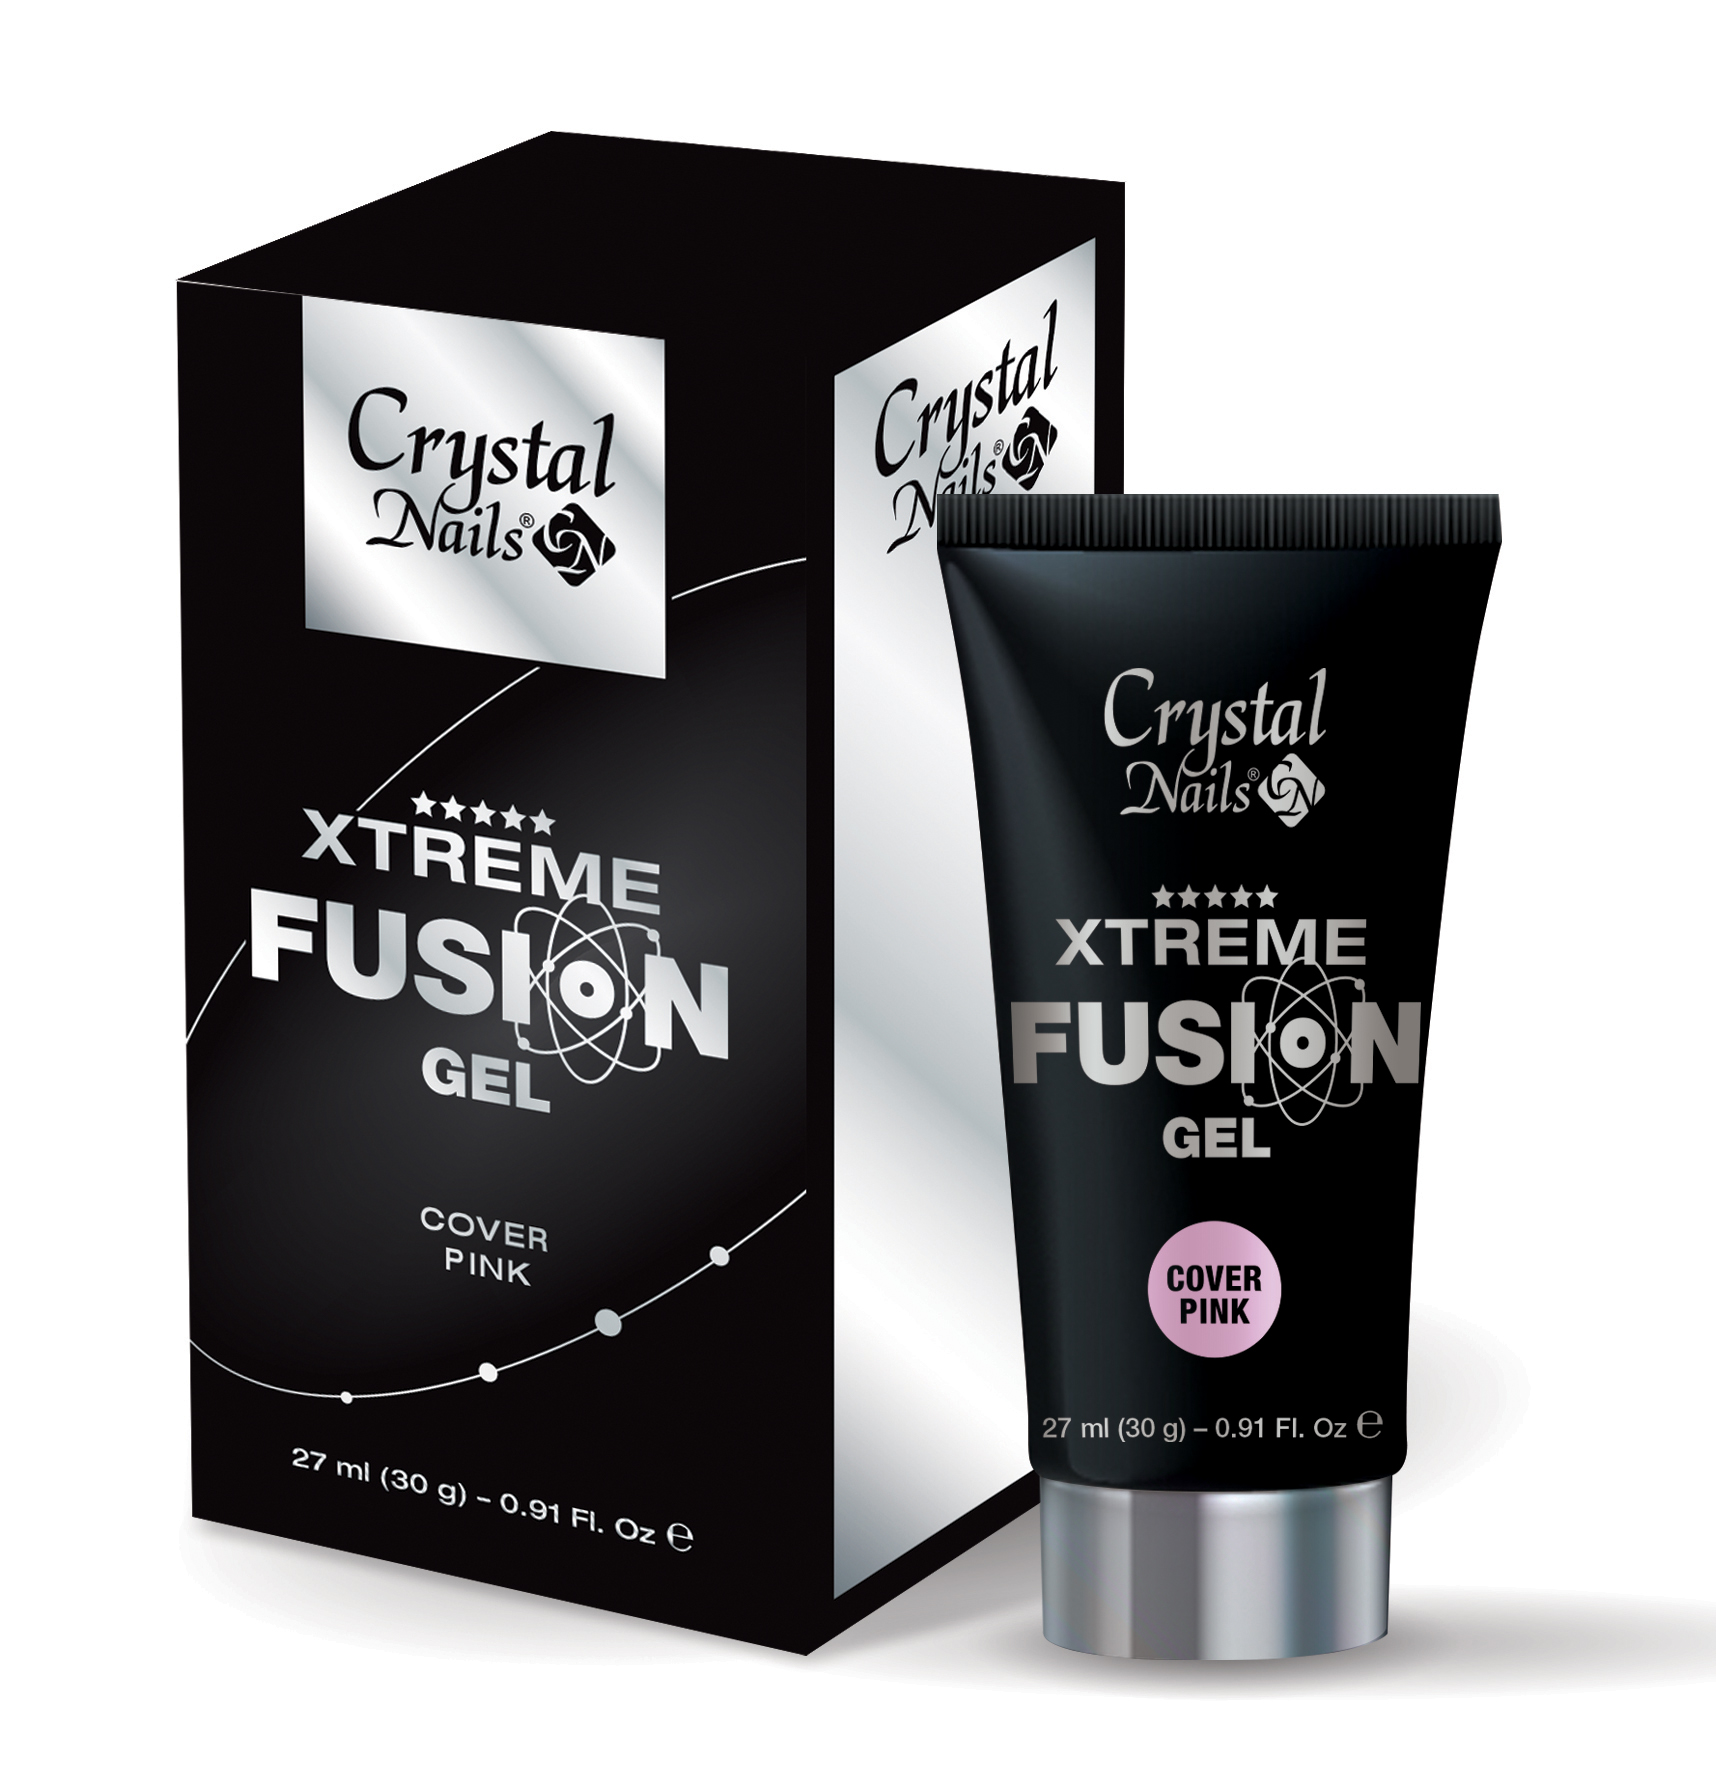 Xtreme Fusion AcrylGel Cover Pink - 30g (1.)